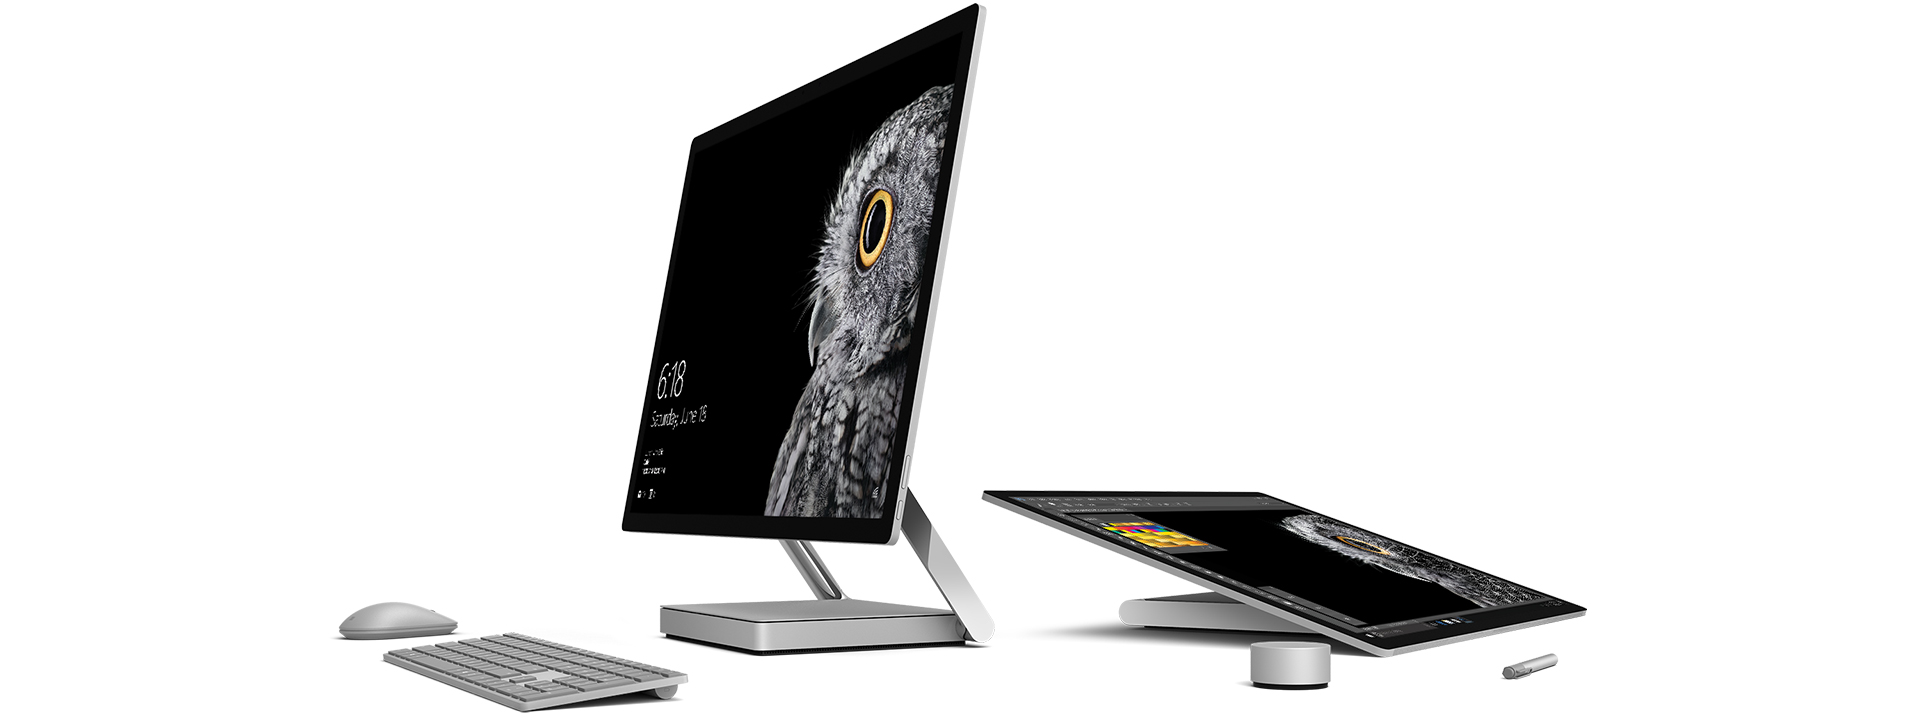 Surface Studio Overview 2 HeroFullBleed V1 image